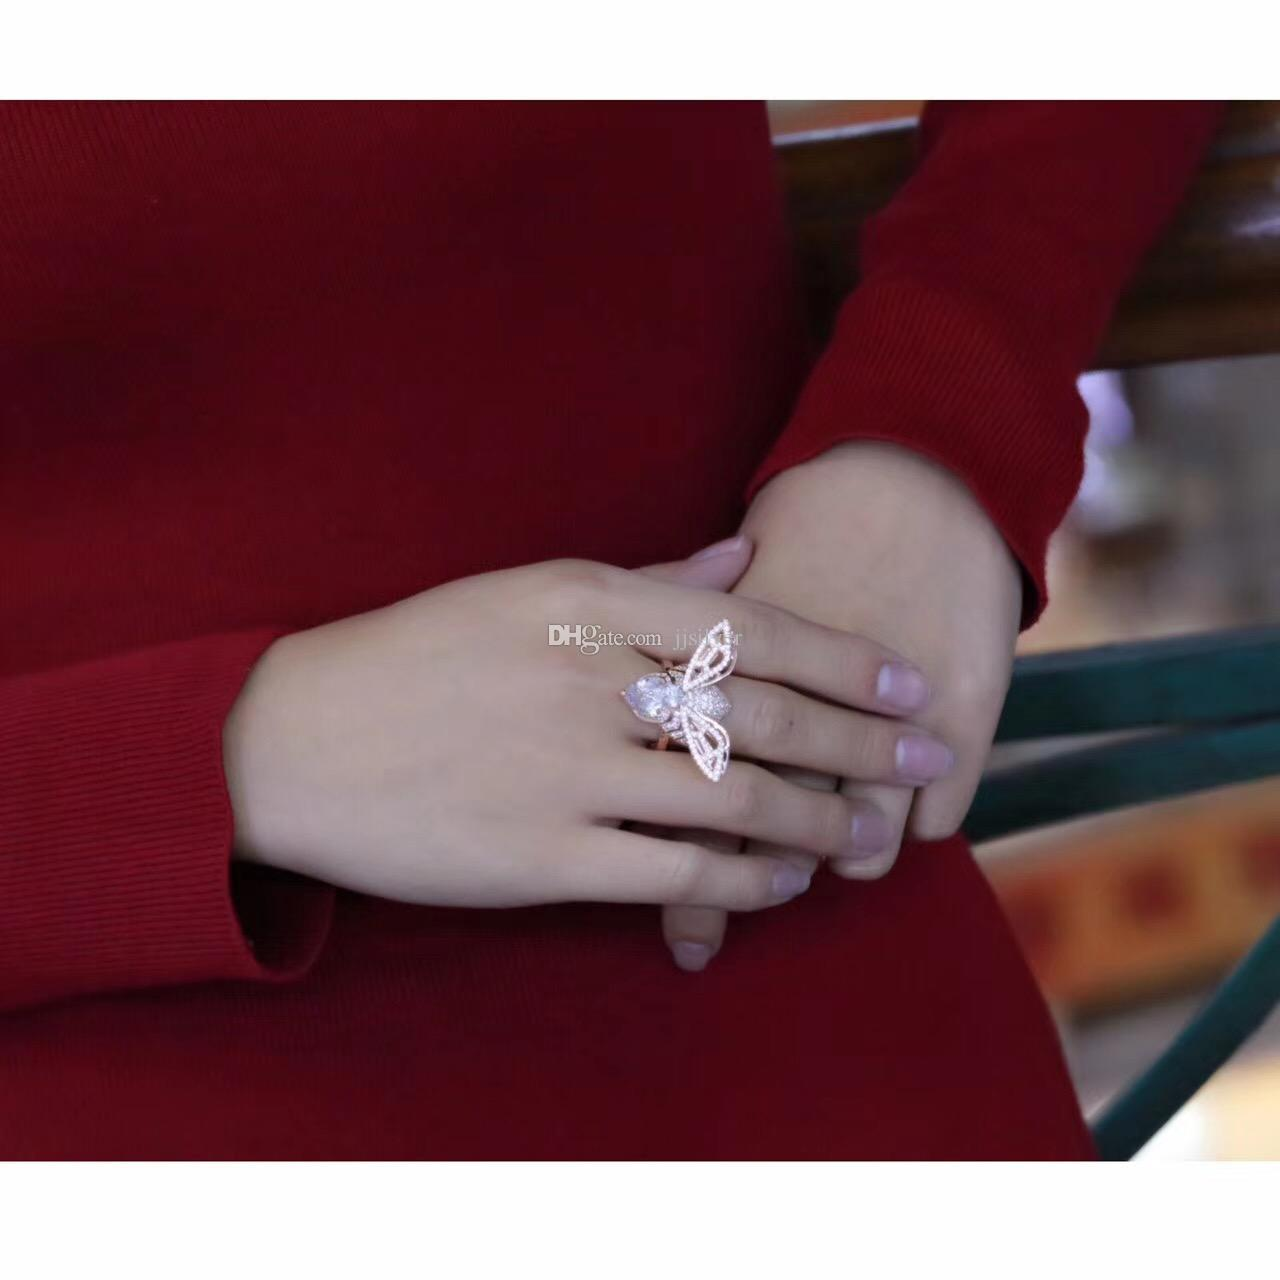 100% Authentic 925 Sterling Silver Real White / Gold / Rose Gold Bee Rings with White & Yellow CZ Stone for Women Jewelry Wedding Party Ring